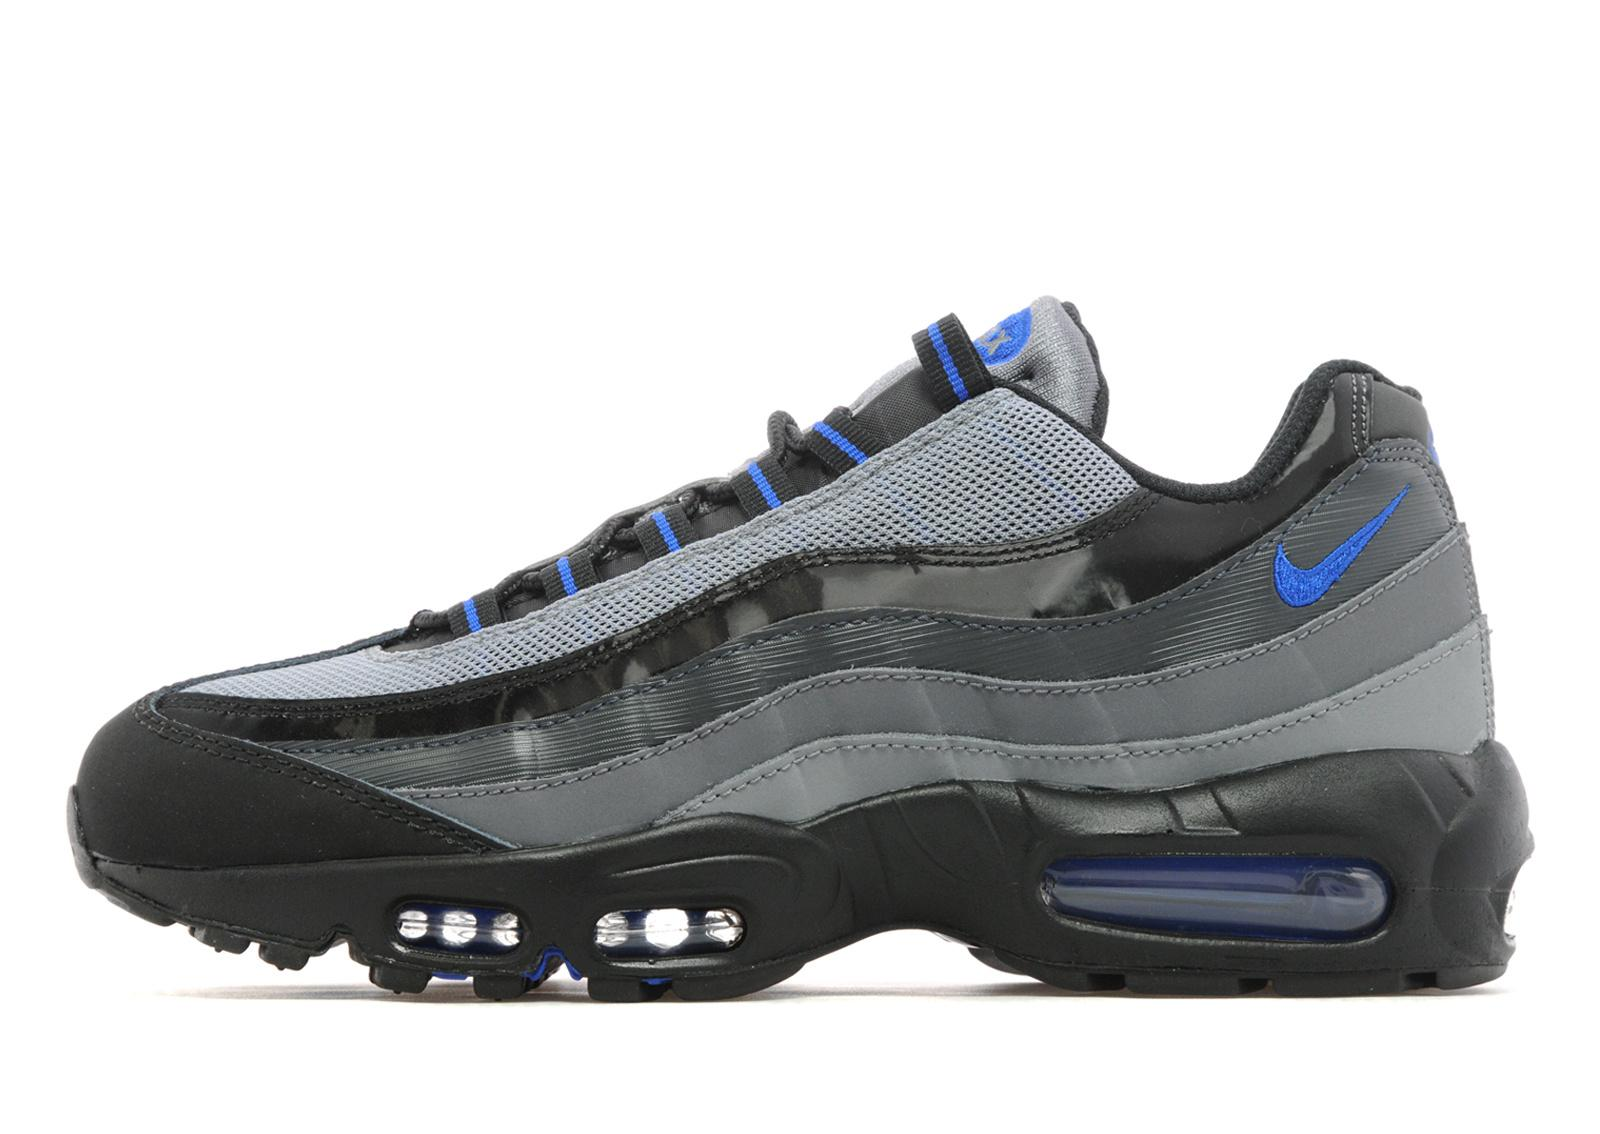 Air Max 95 Jd Sports Southportsuperbikeshop Co Uk